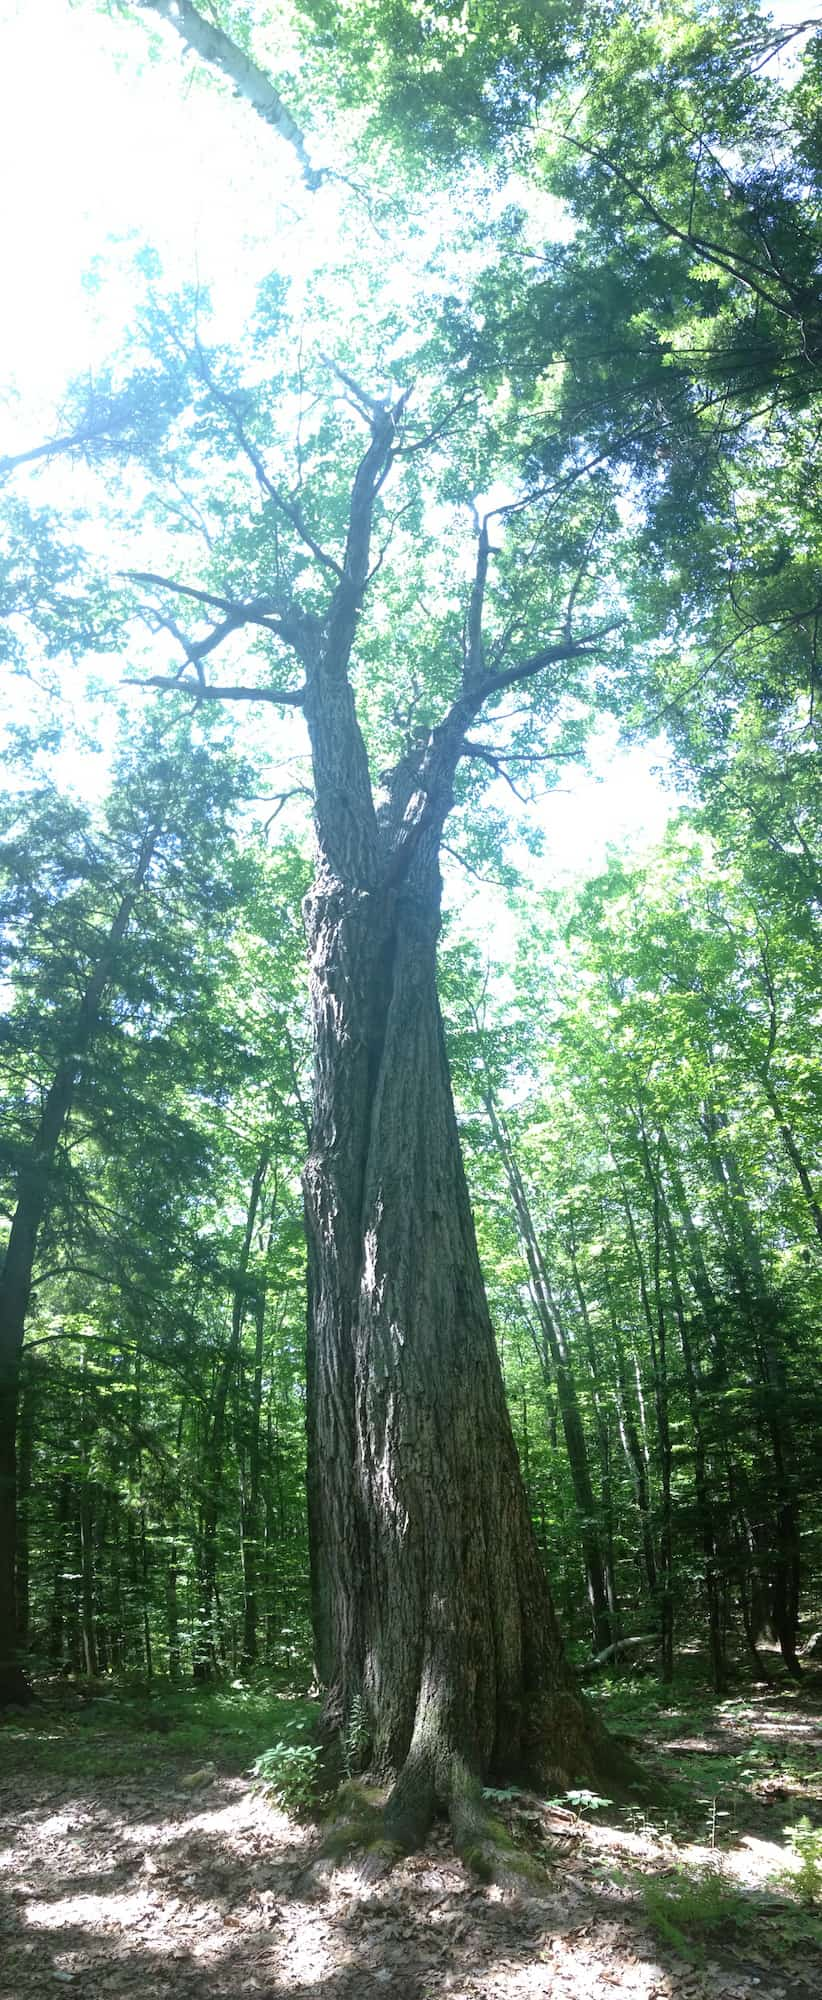 The massive red oak (Quercus rubra) near my friend's house in New Hampshire.